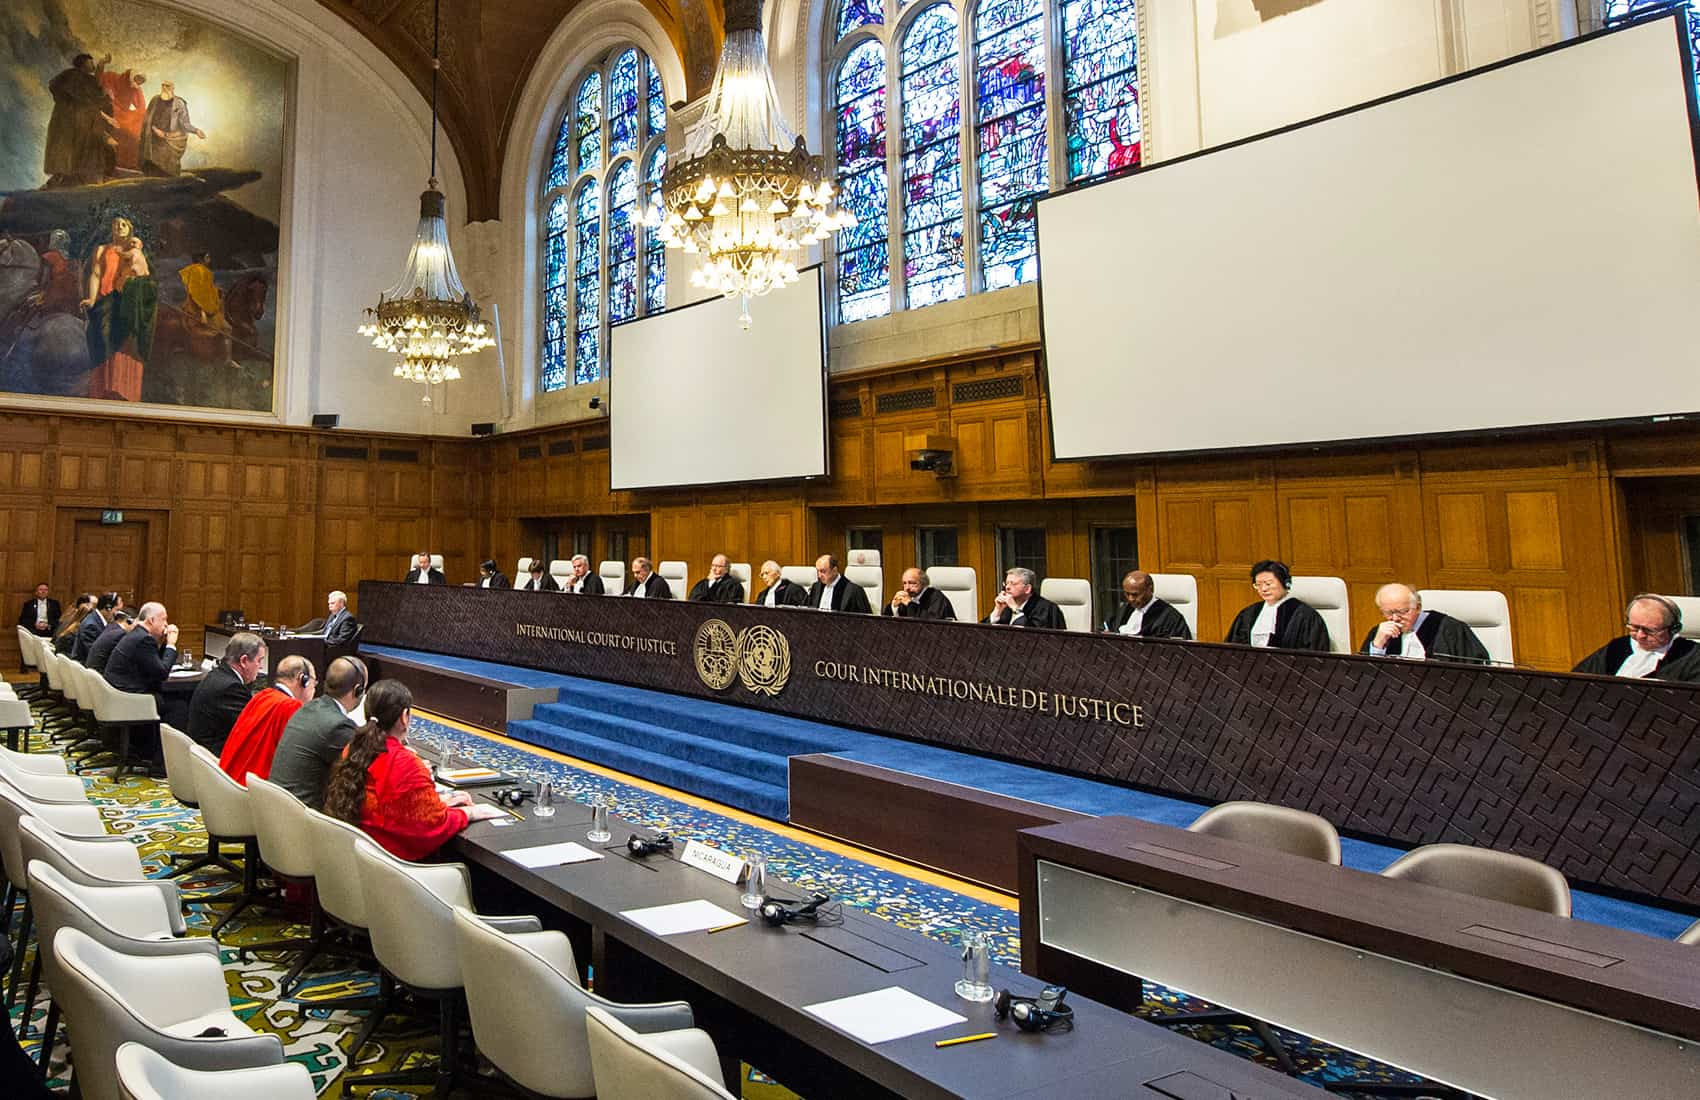 Final hearings before the International Court of Justice